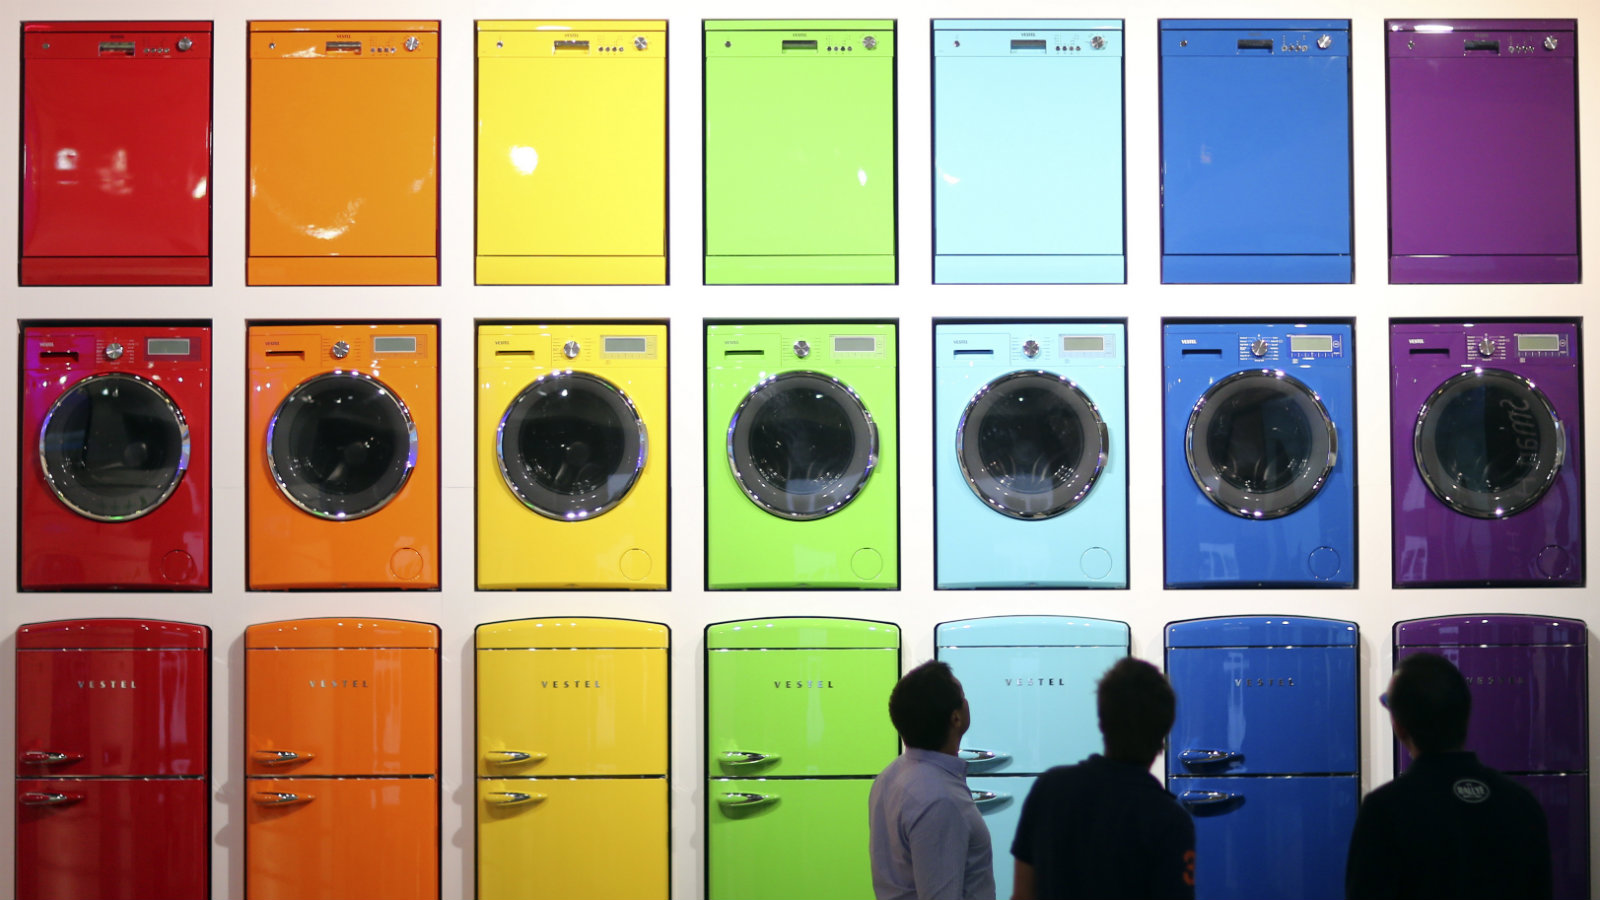 Visitors look at a display of stoves, dishwashers, washing machines and integrated fridge freezers (from top to bottom) produced by Vestel during the IFA Electronics show in Berlin September 4, 2014. REUTERS/Hannibal Hanschke (GERMANY - Tags: BUSINESS SCIENCE TECHNOLOGY)